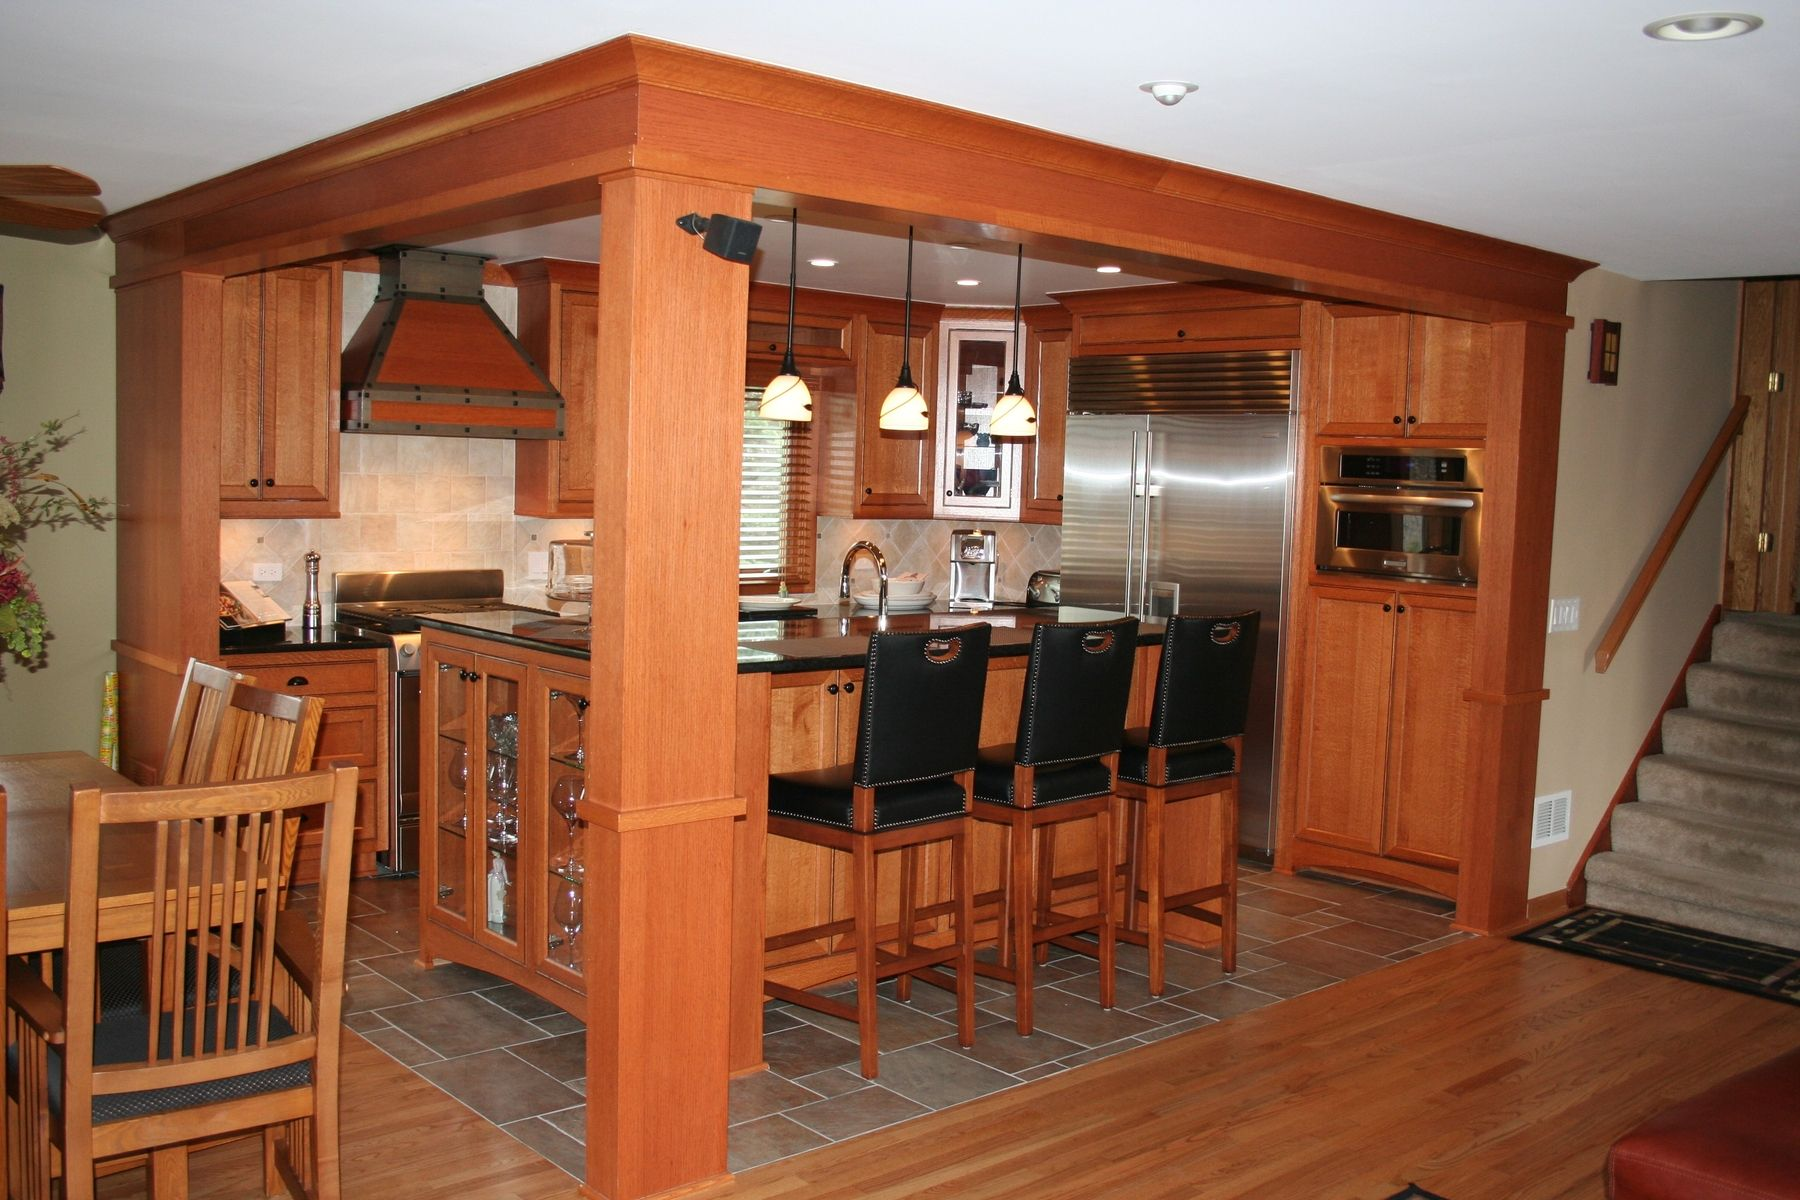 Handmade Custom Quarter Sawn Oak Kitchen Cabinets By Jrs